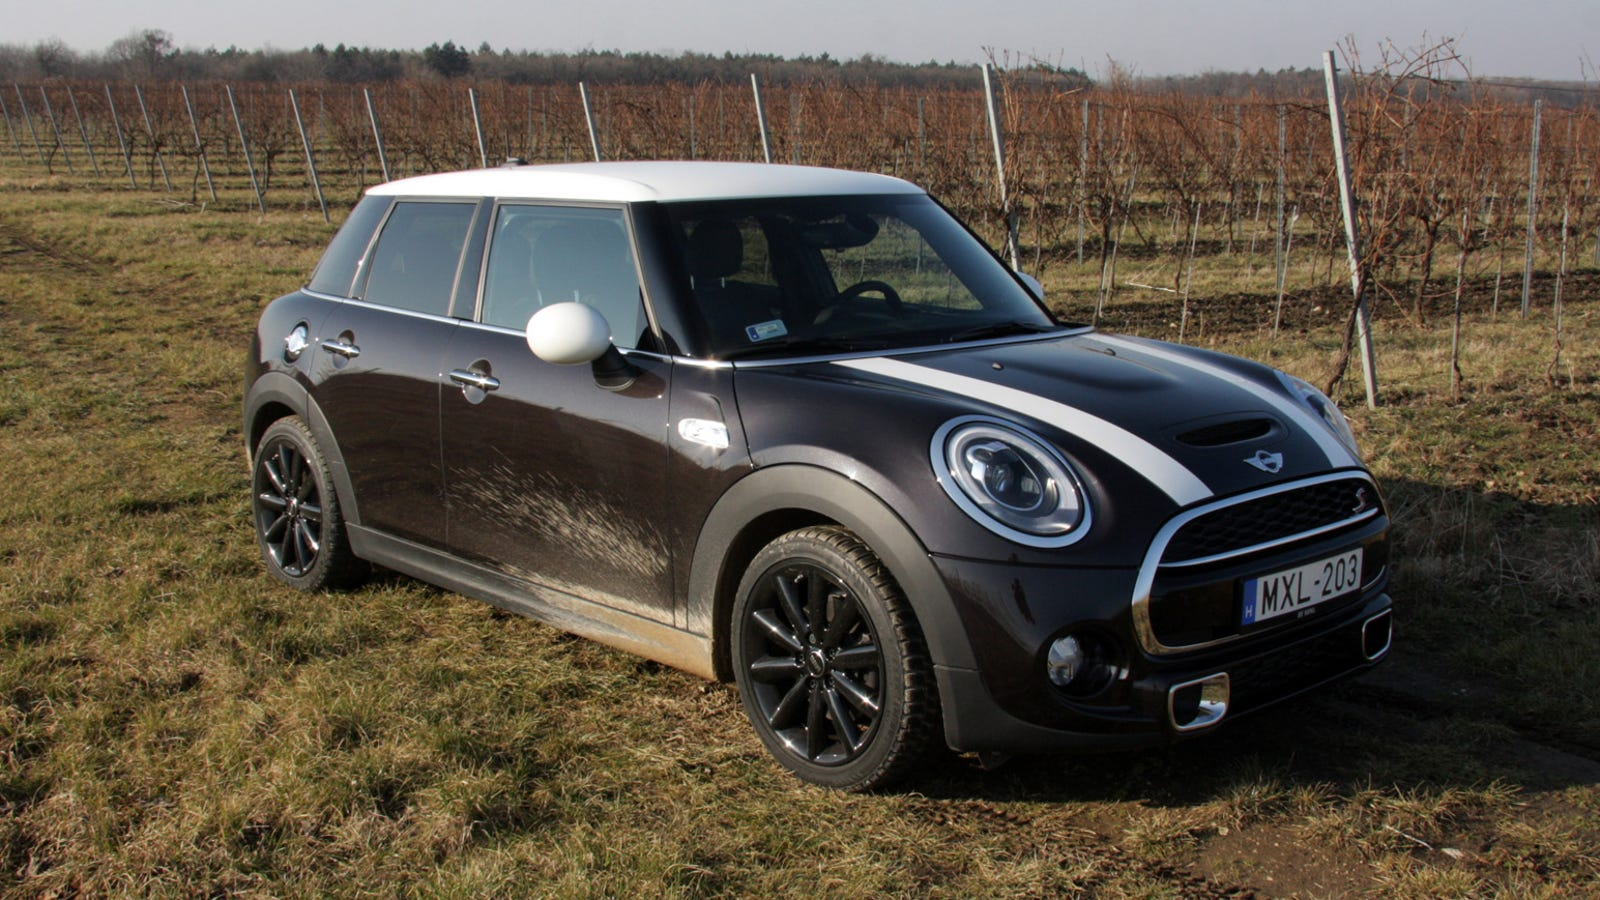 i drove a new diesel mini cooper sd for an hour. Black Bedroom Furniture Sets. Home Design Ideas